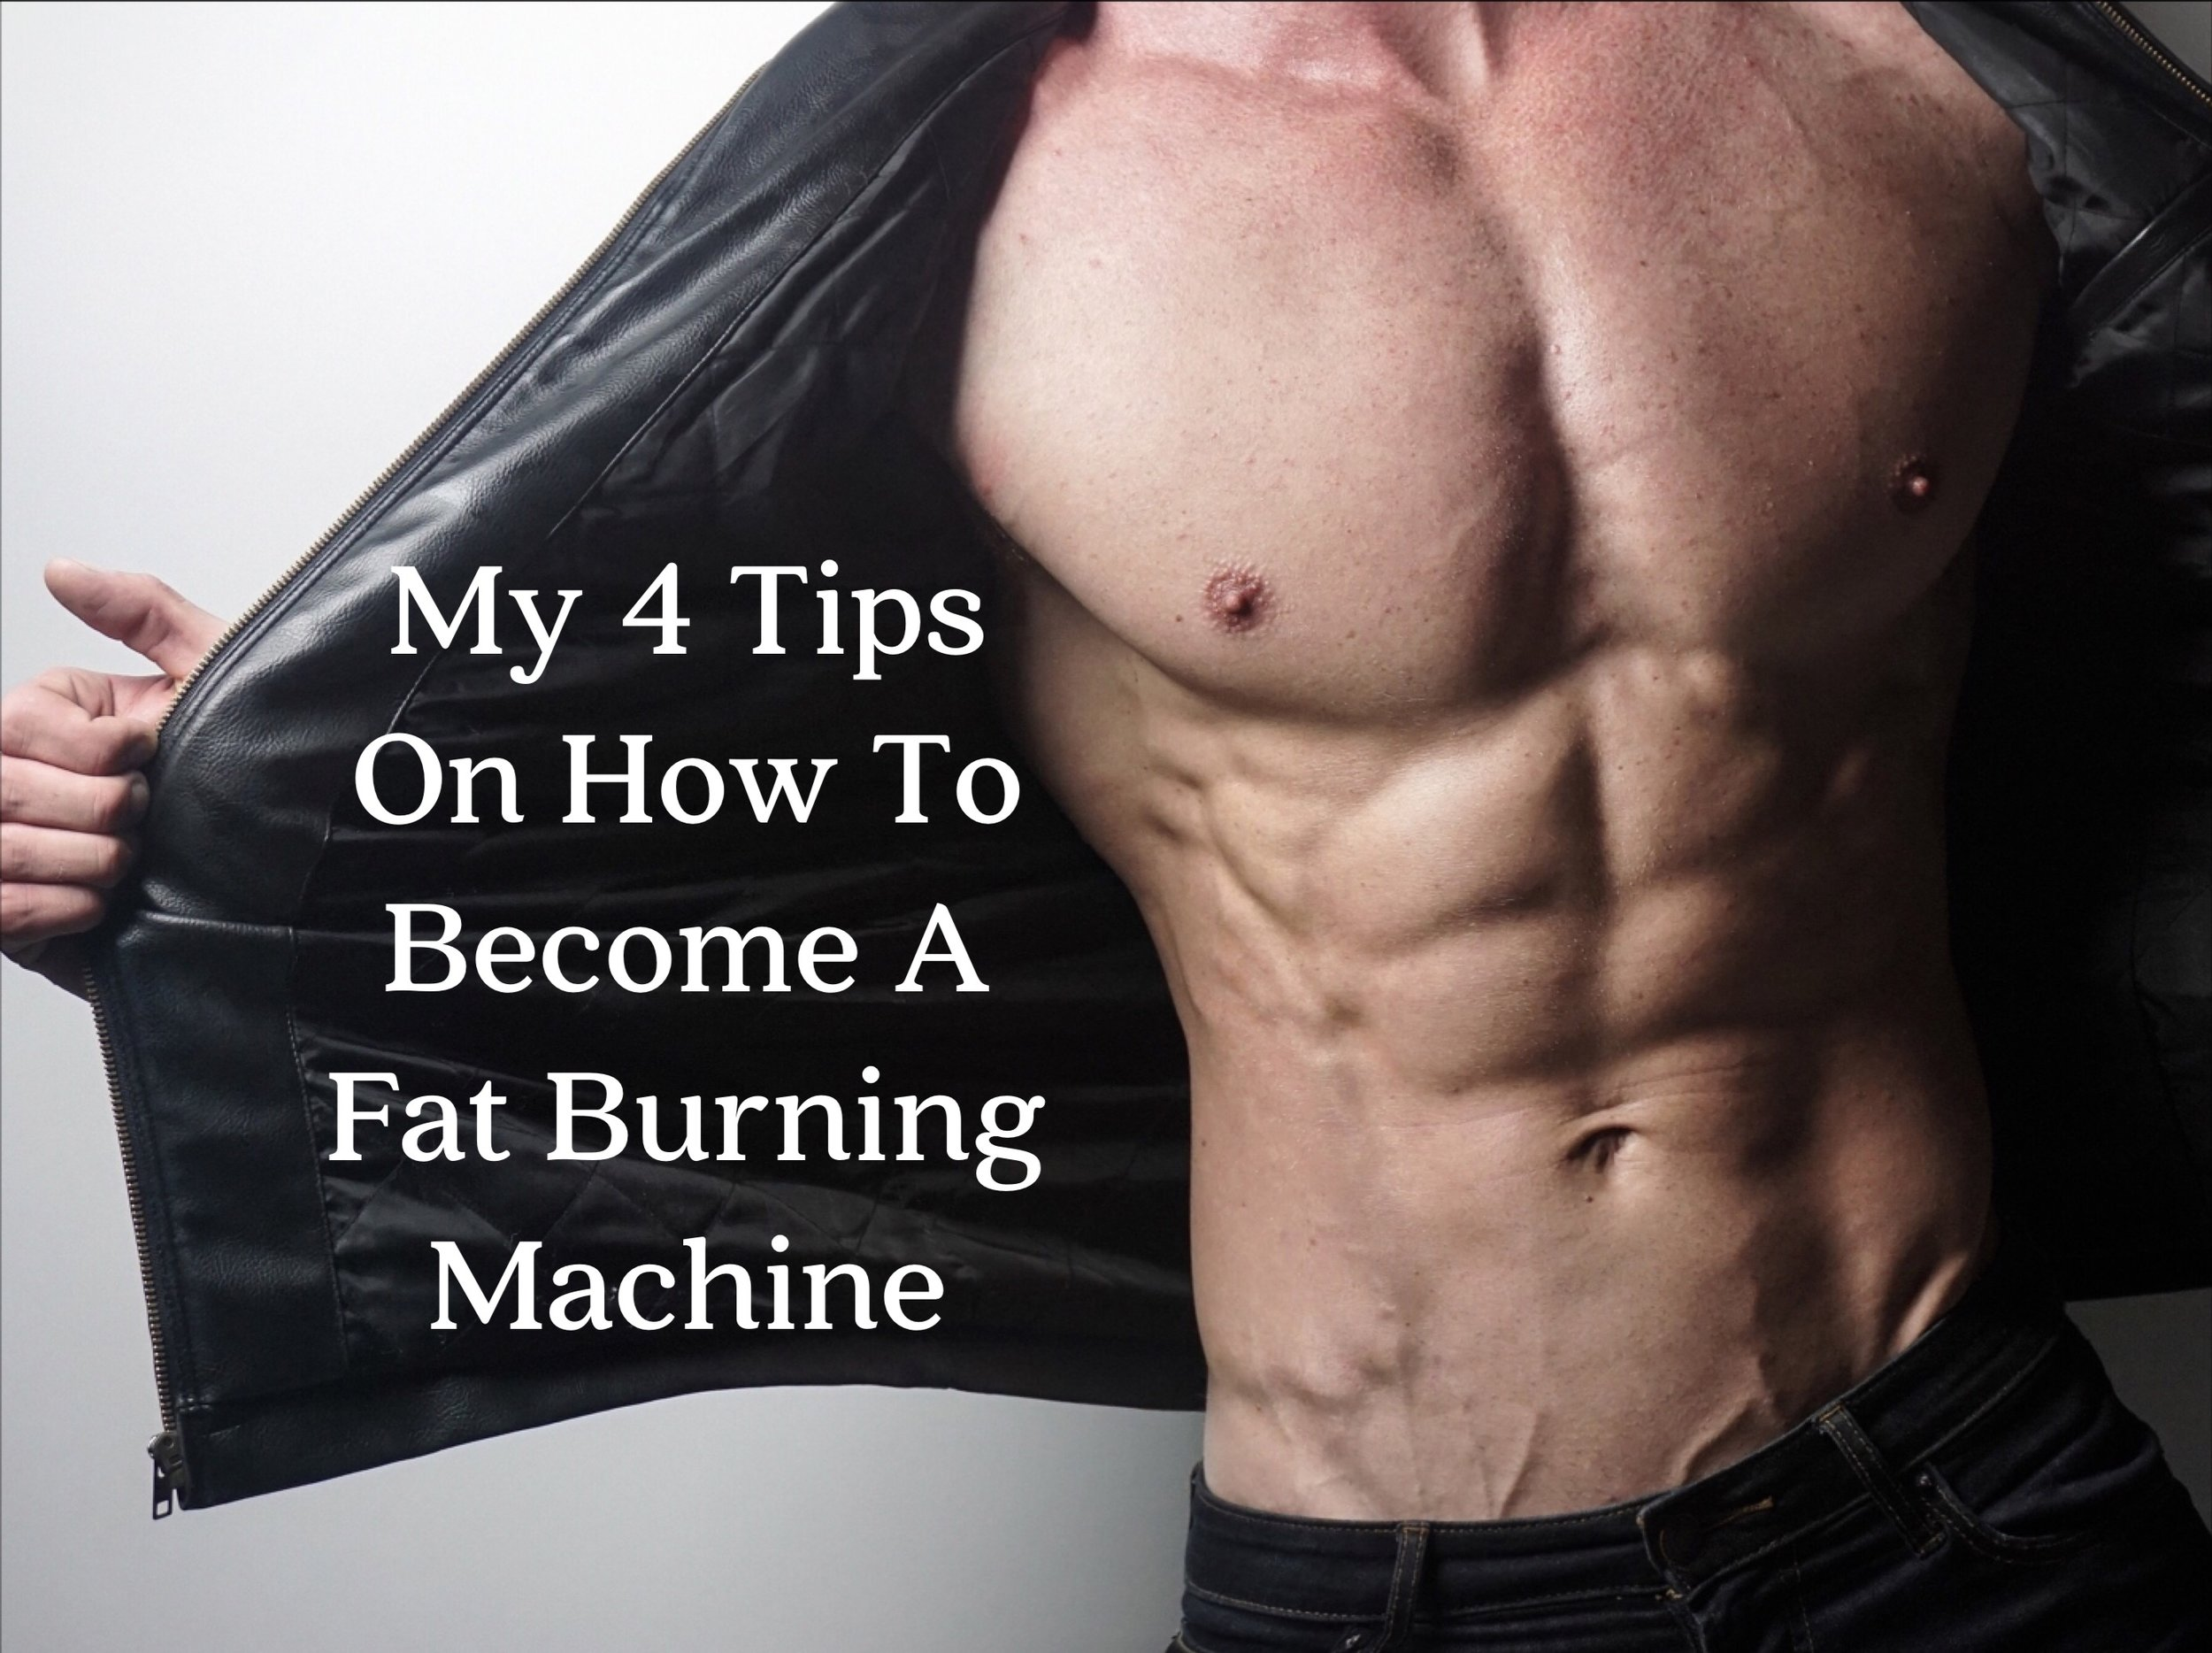 Four tips on how to become a fat burning machine